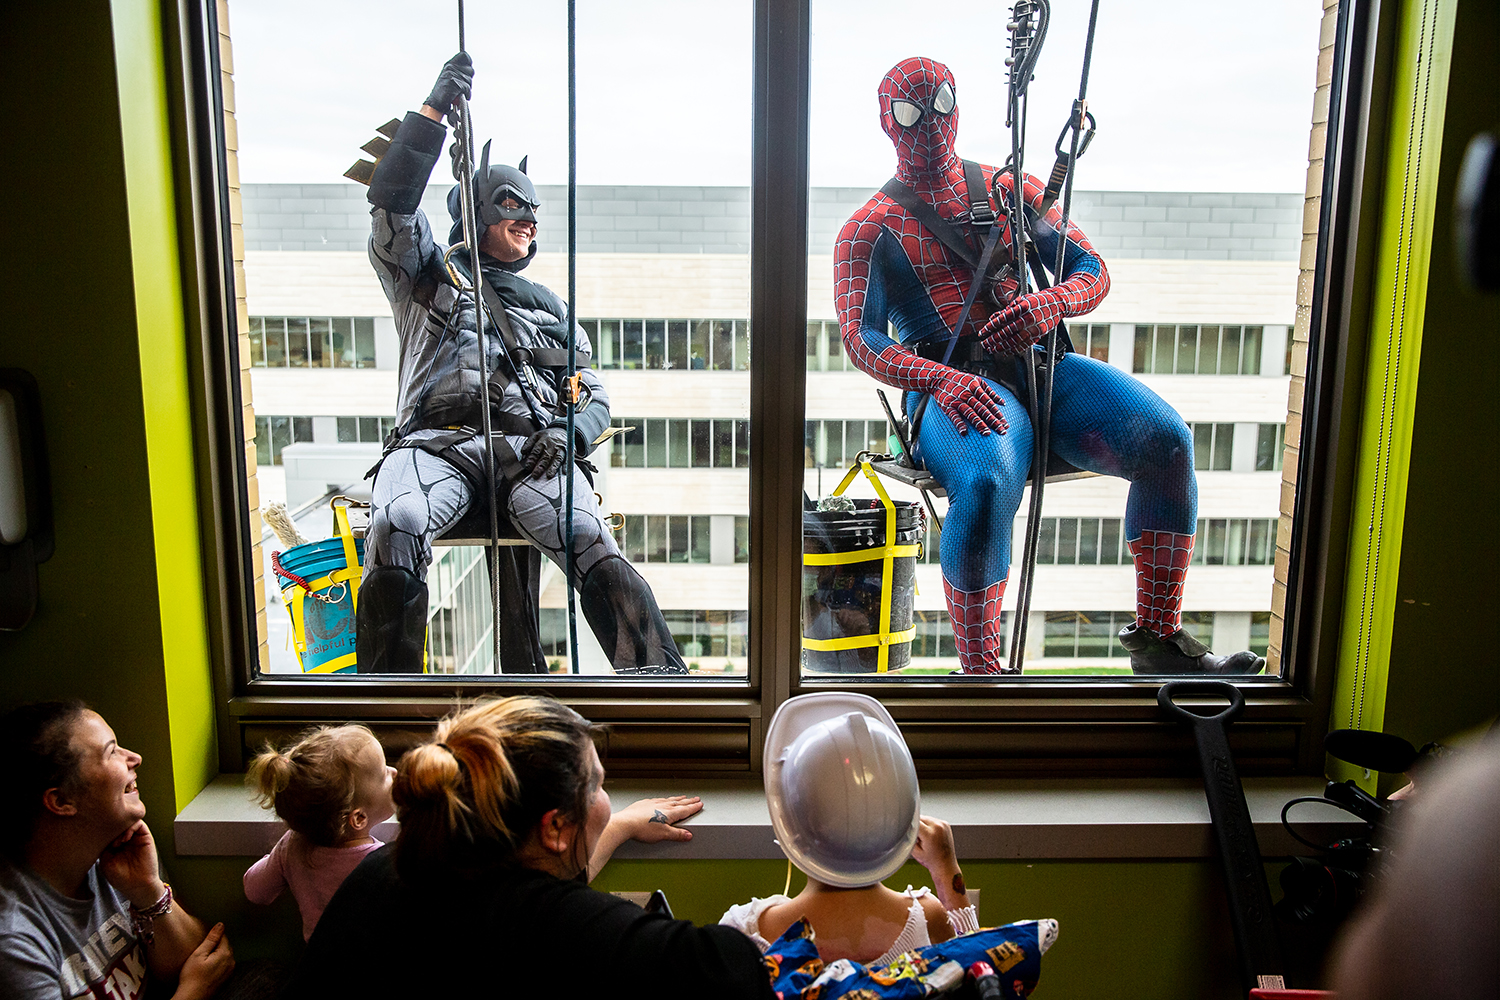 Batman, portrayed by Paul Soenksen, and Spiderman, portrayed by Roddrick Napier, bring a smile to children at HSHS St. John's Children Hospital as the superhero duo visit from outside as window washers courtesy of Maintenance Supply and O'Shea Builders, Thursday, Nov. 8, 2018, in Springfield, Ill. [Justin L. Fowler/The State Journal-Register]